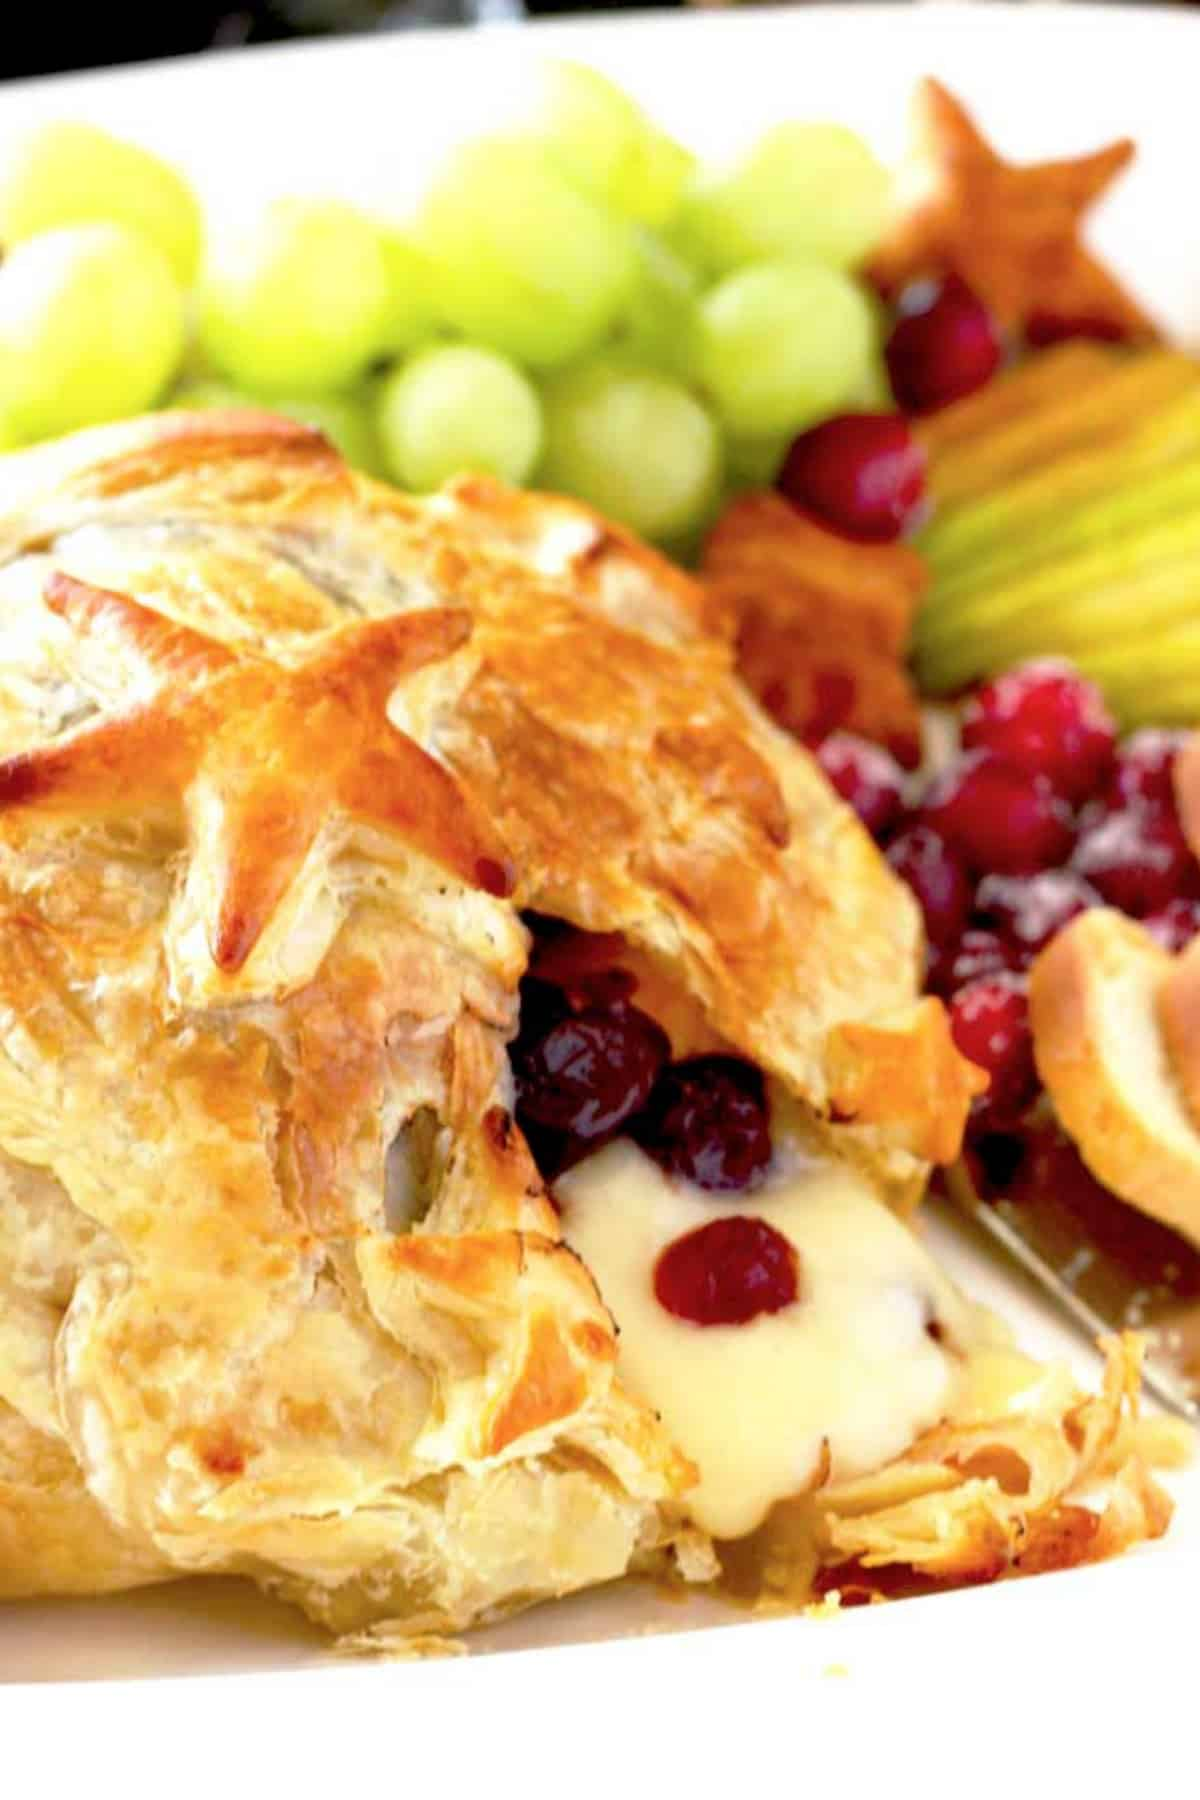 Baked brie oozing out of puff pastry with cranberries